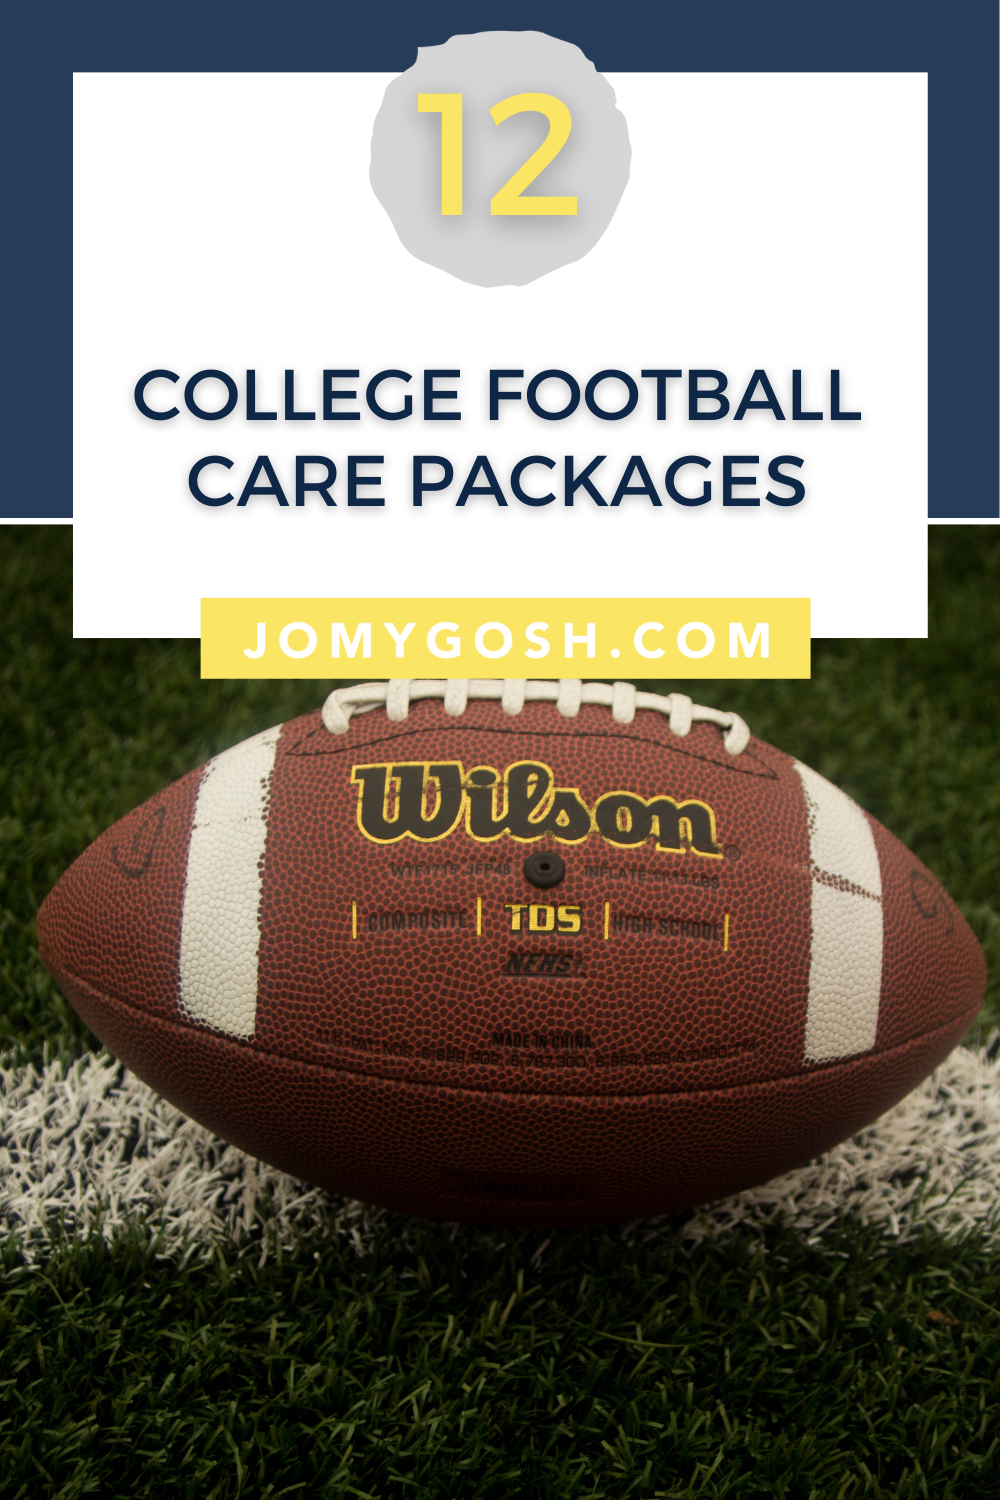 Round up with college football care packages,  links so you can save them easily!